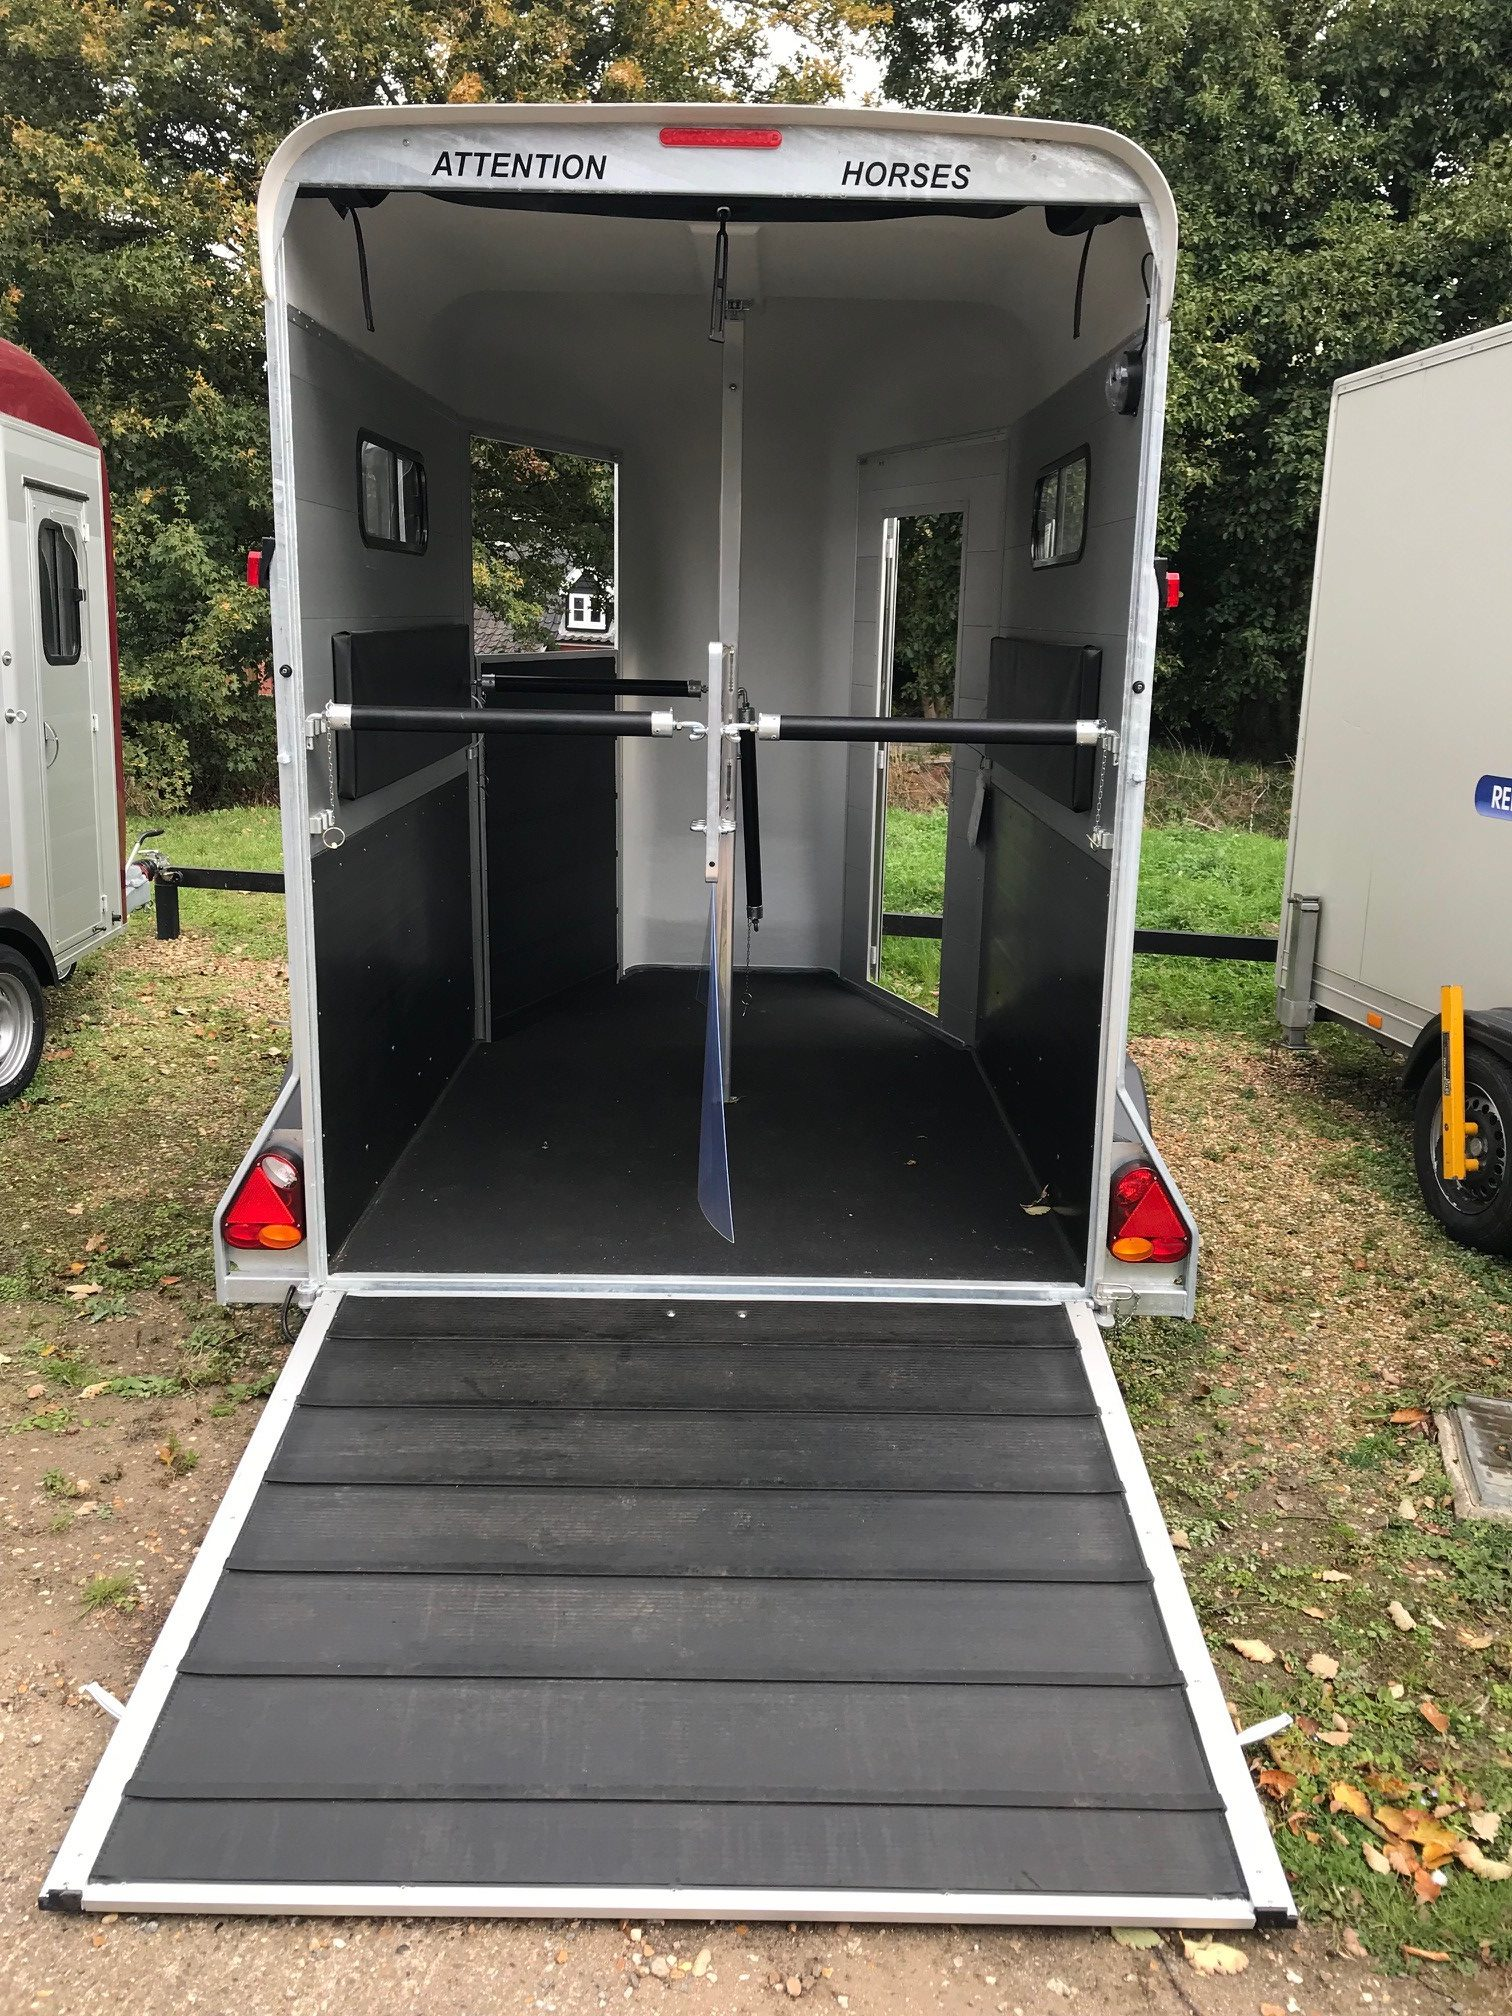 Cheval Liberte Touring Country Anglian Trailer Centre